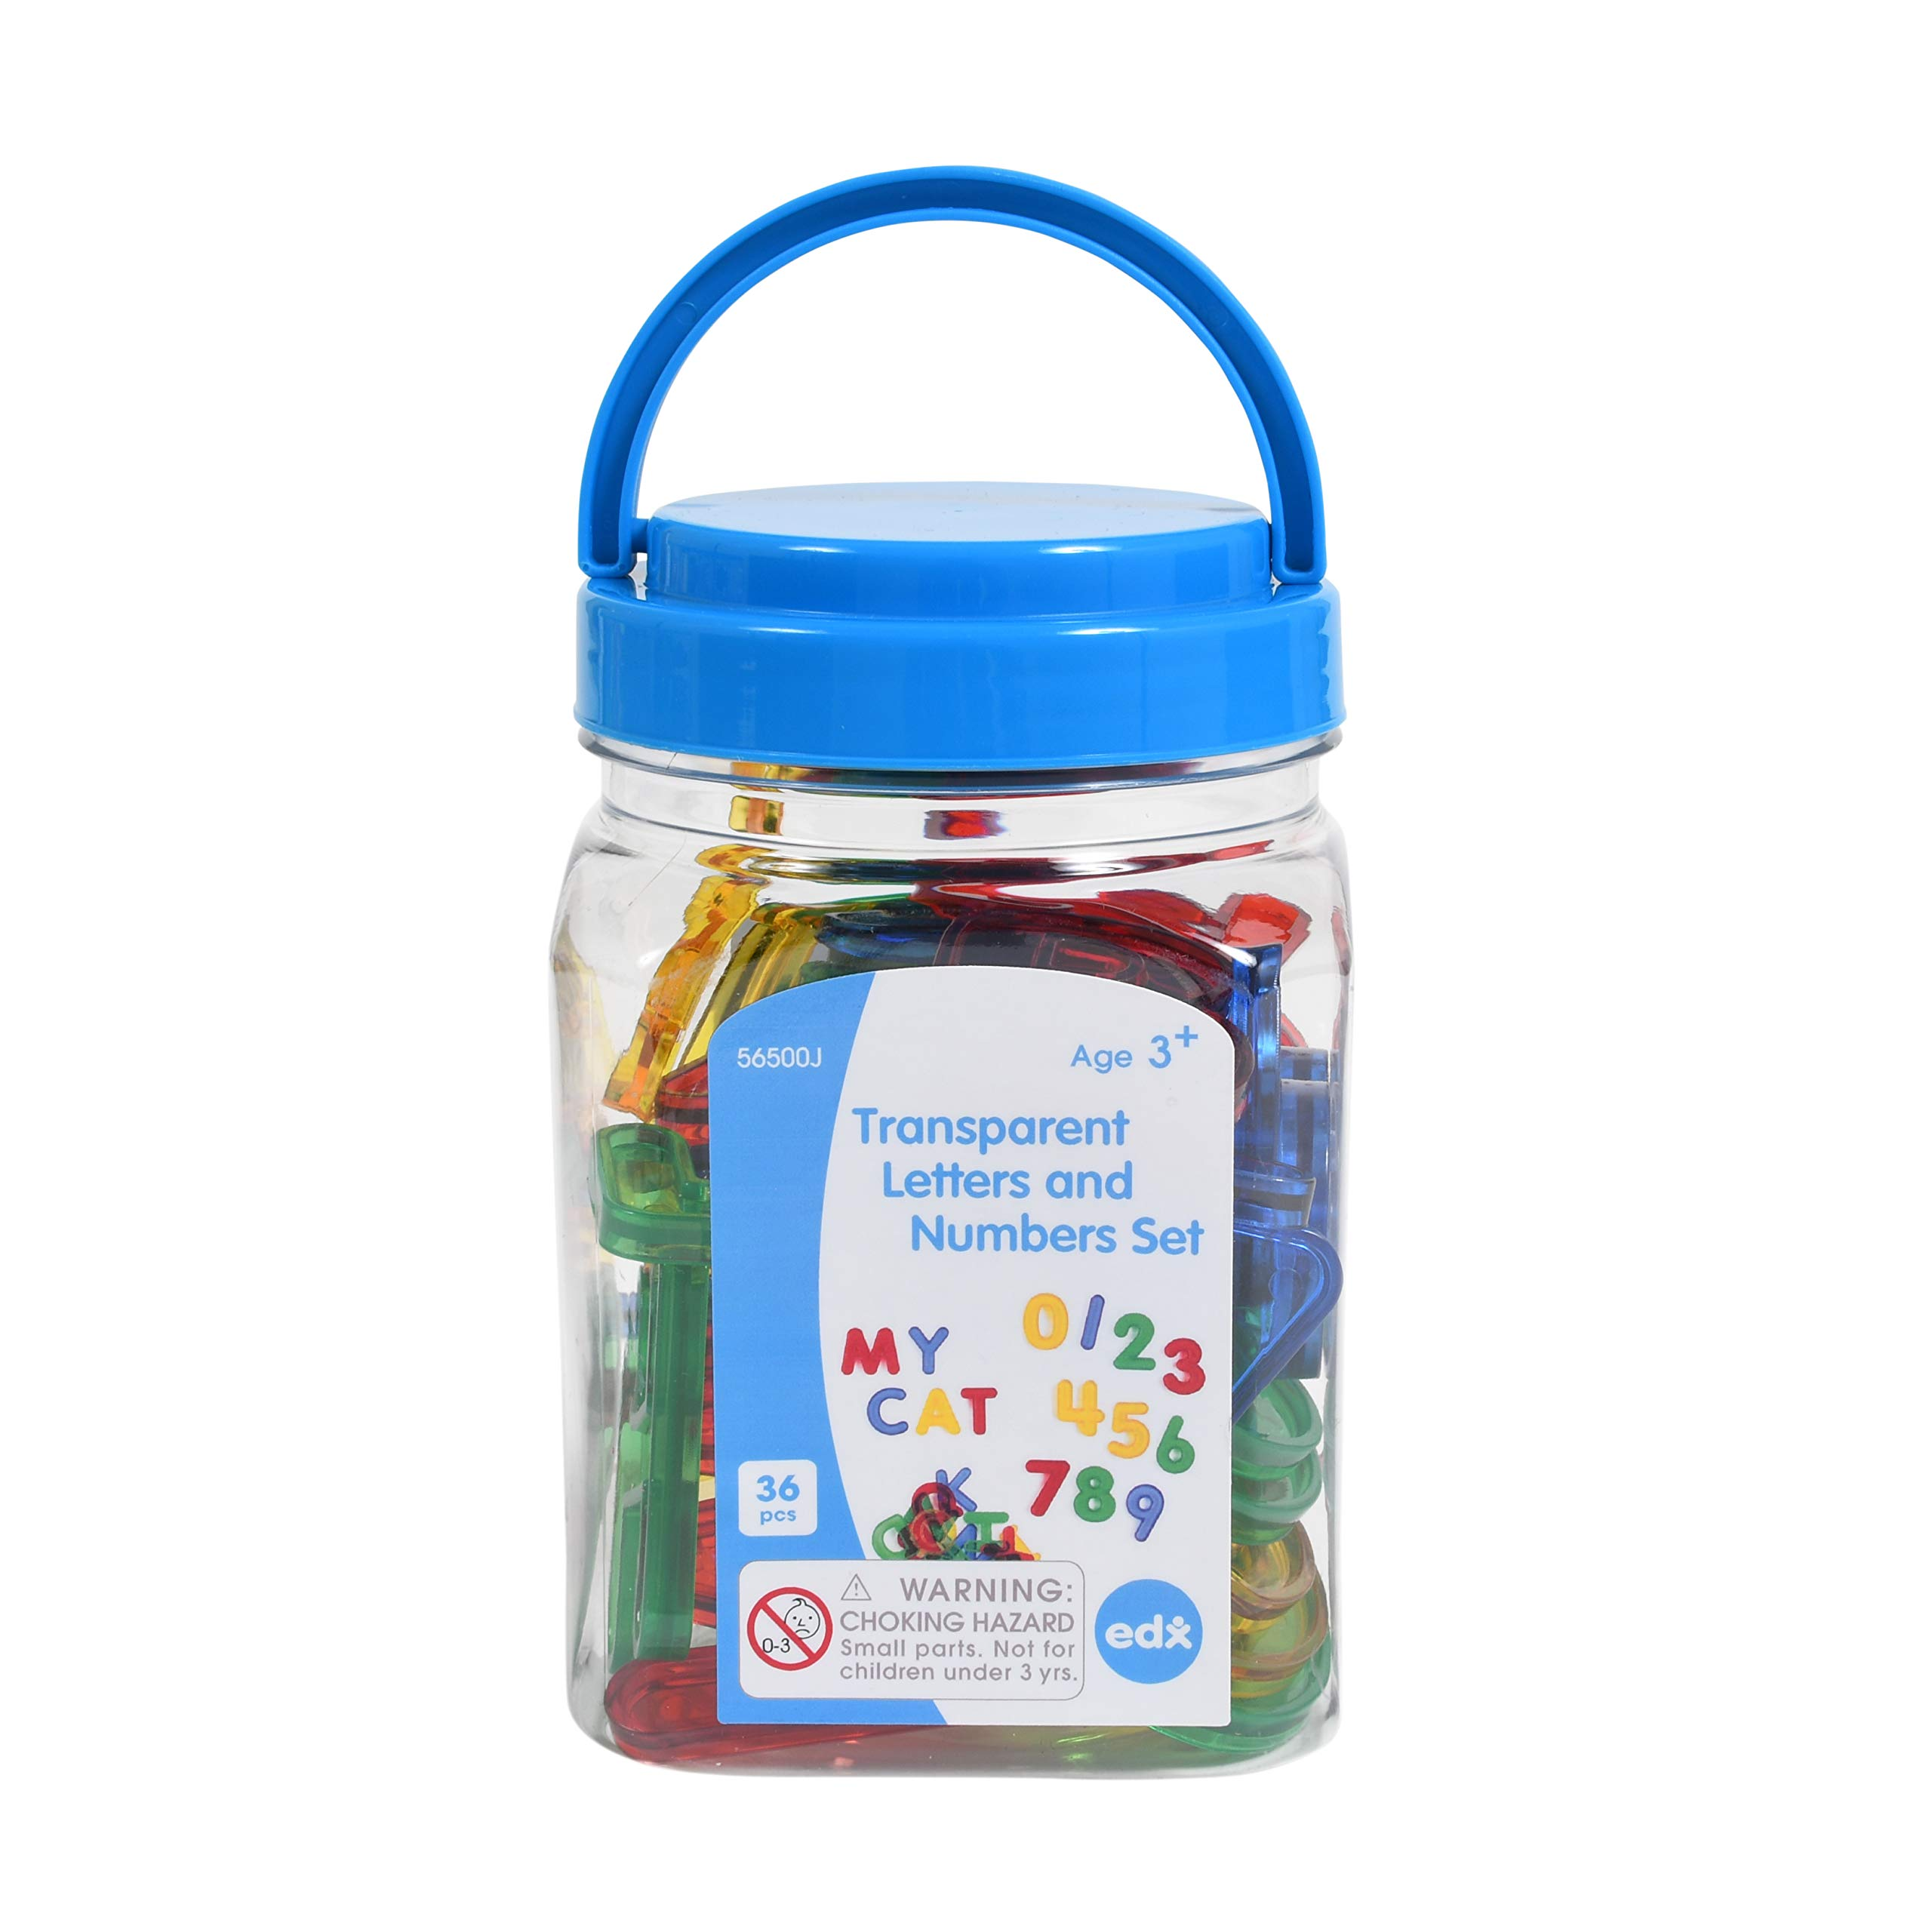 edx education Transparent Letters and Numbers Set - Mini Jar - Colorful, Plastic Letters and Numbers - Light Box Accessory - Sensory Play